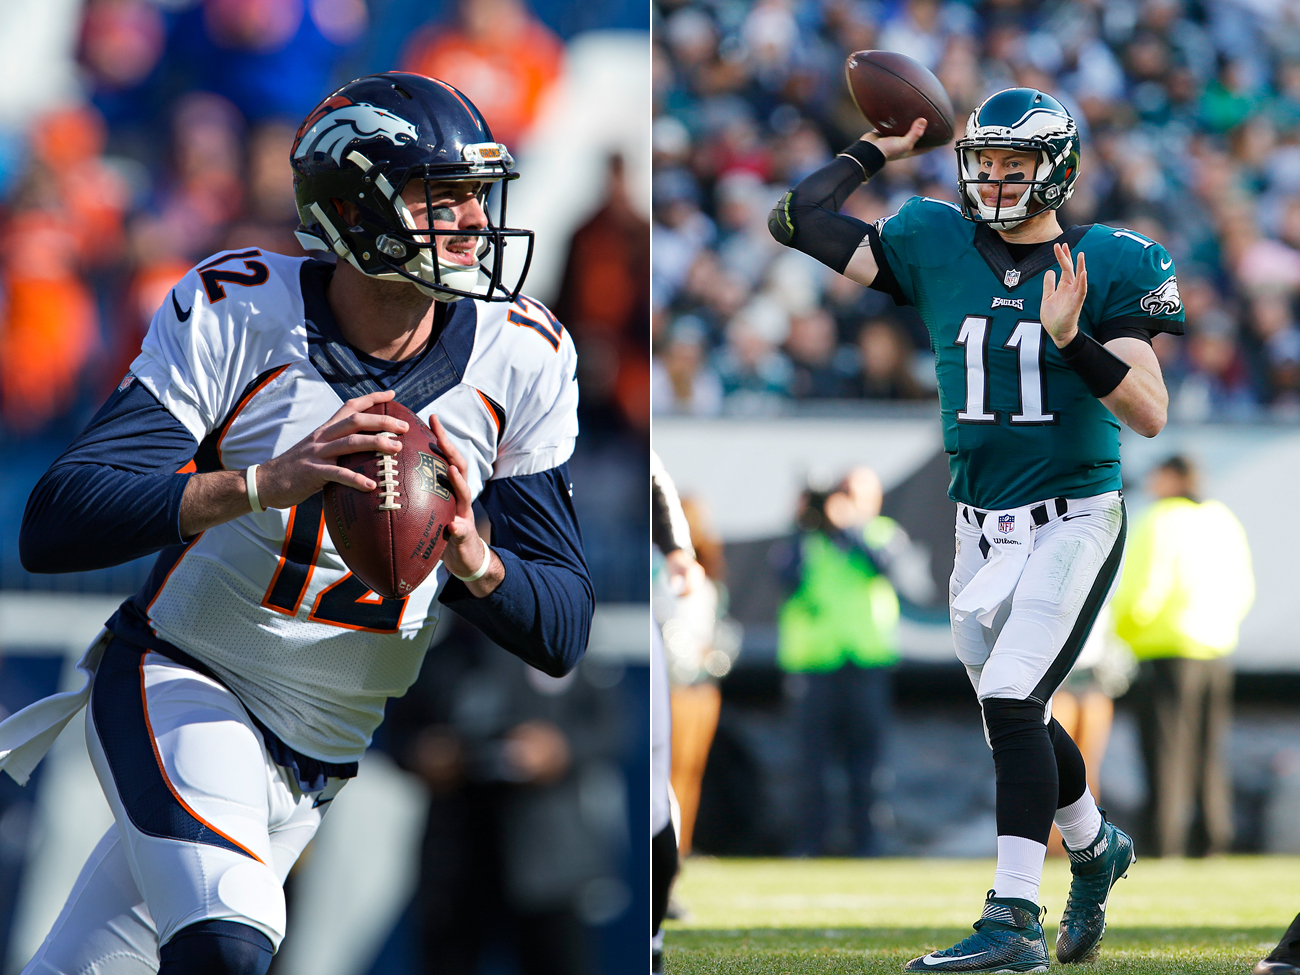 The Broncos will give Paxton Lynch the chance to win the job, while the Eagles want to see more leadership from Carson Wentz.